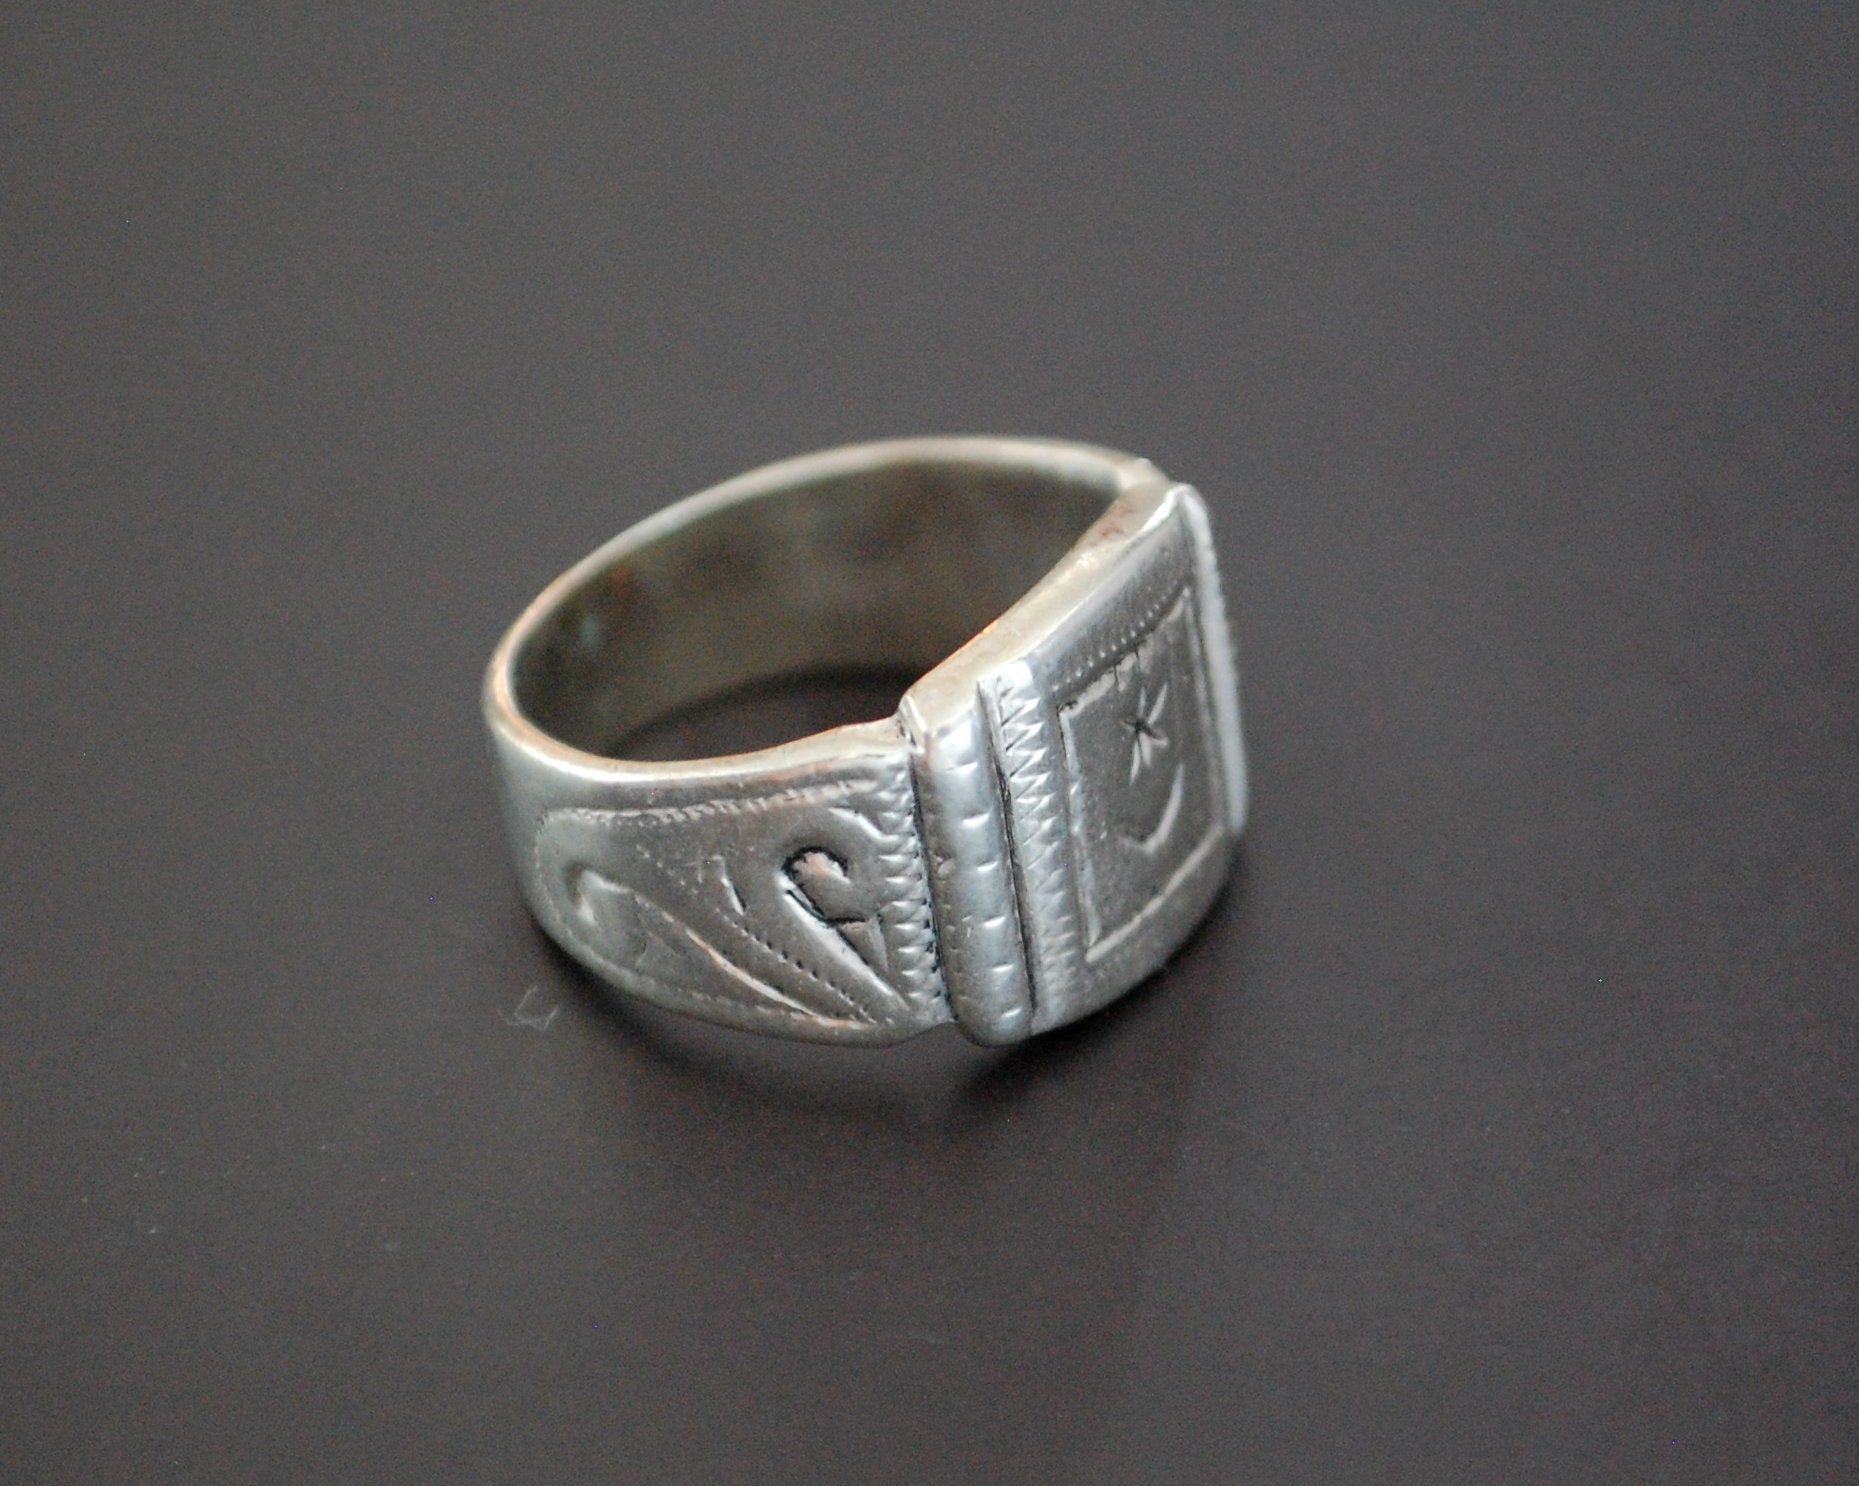 Berber Band Ring - Size 6.5